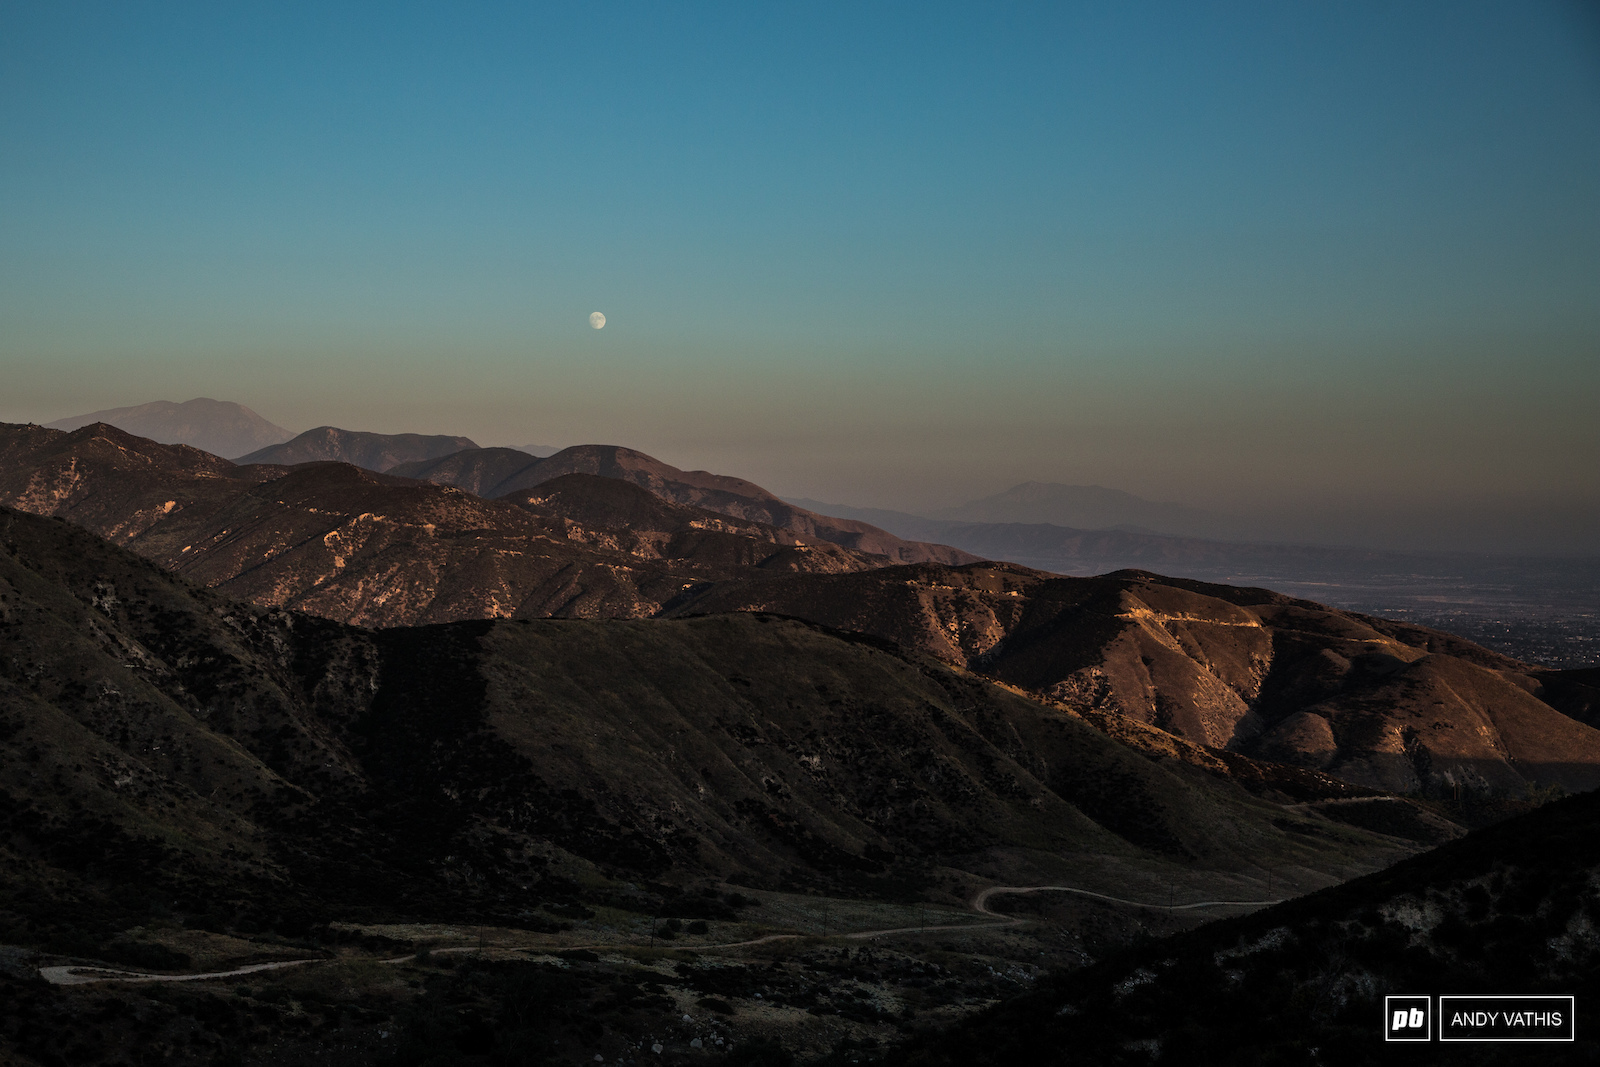 Moonrise over the Cali tundra. One more sleep until the going gets hot and dry.